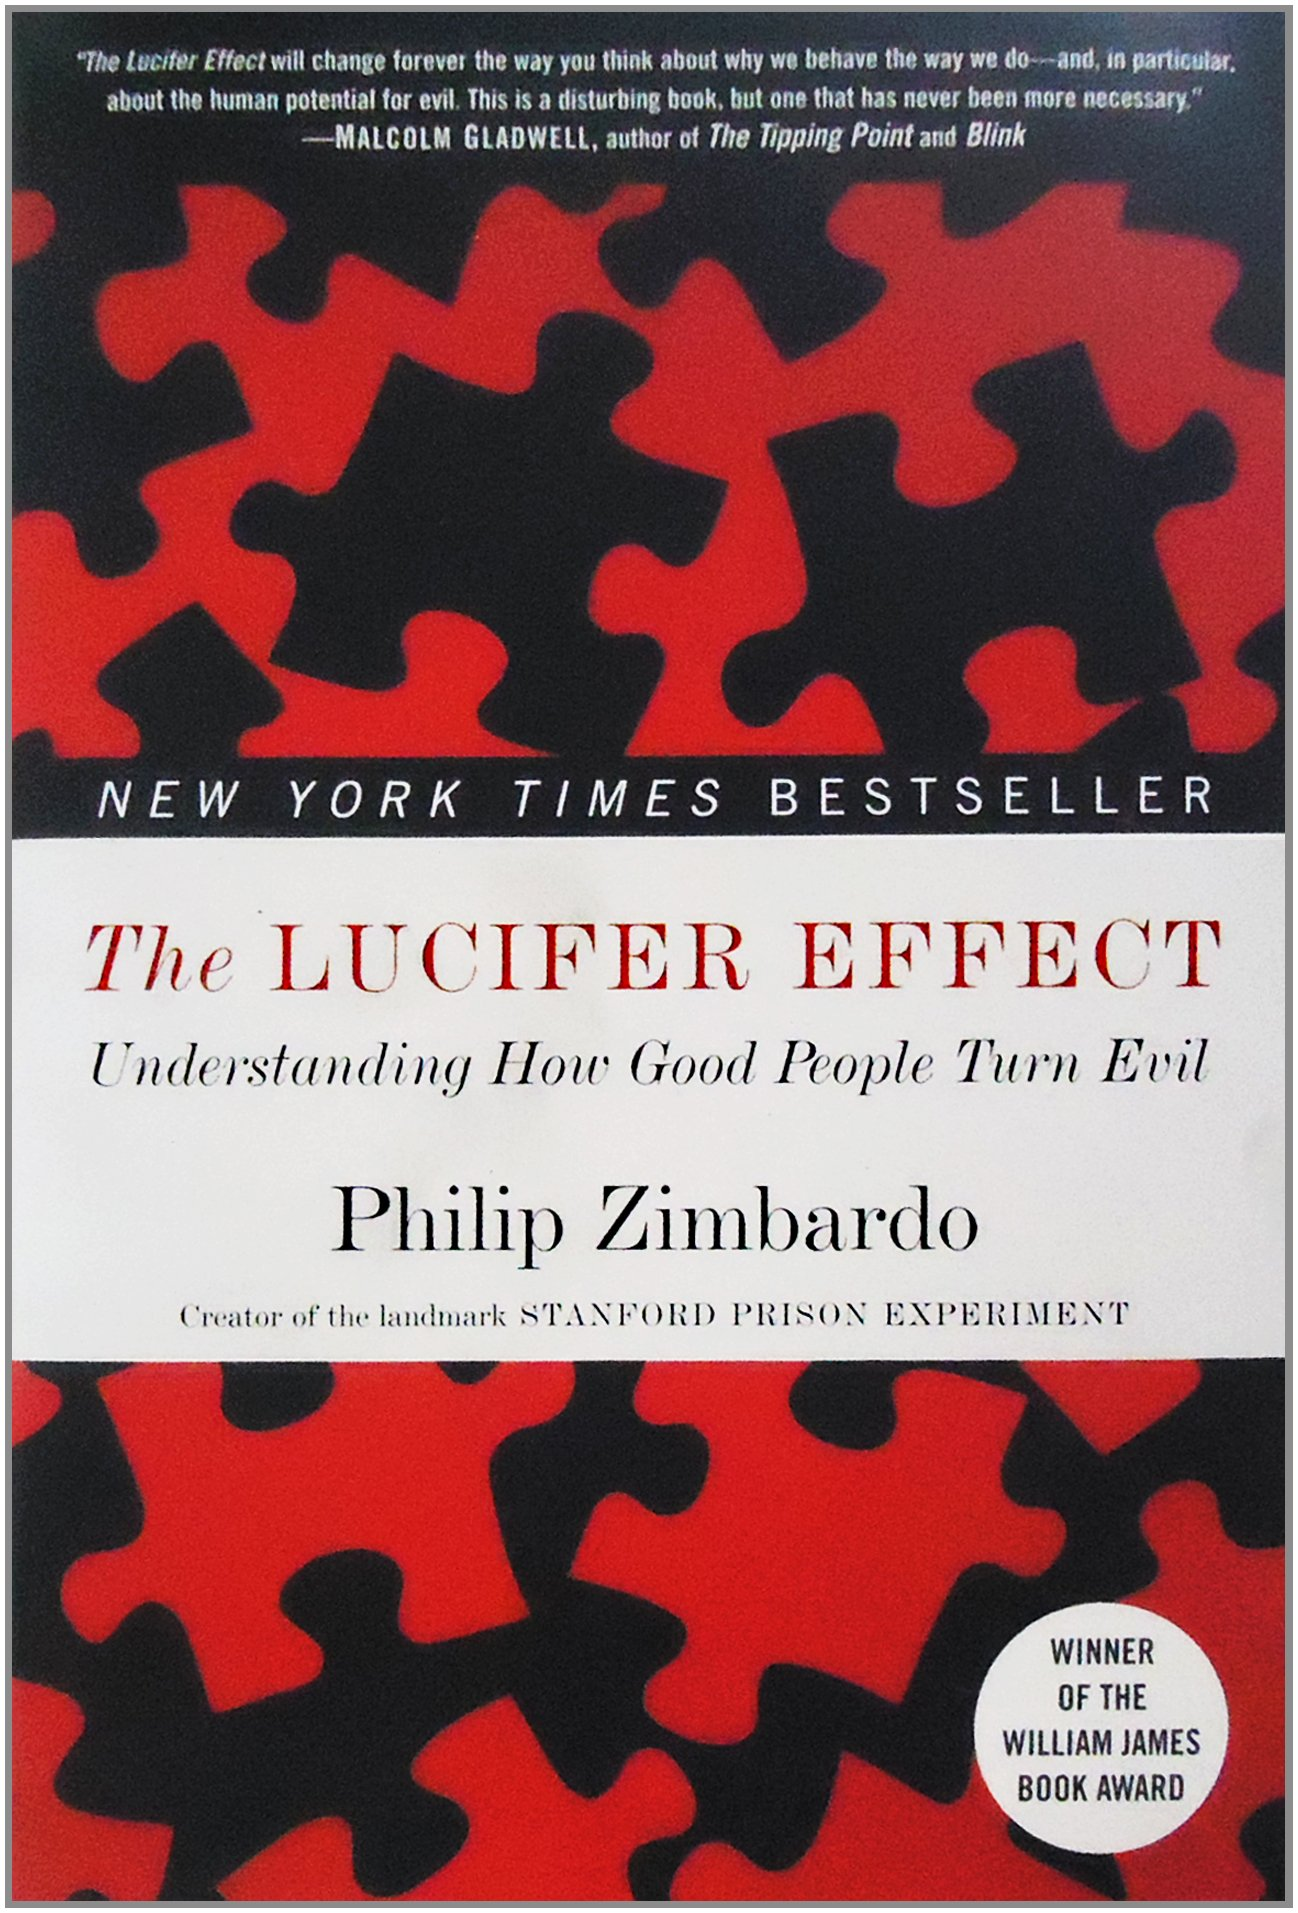 why good people do bad things in the lucifer effect a book by philip zimbardo The lucifer effect: understanding how good people turn evil by philip zimbardo rider books £1899, pp576 on 28 april 2004, the american news programme 60 it is to answer the question of 'how good people turn evil' that zimbardo has written the lucifer effect, a formidable piece of.